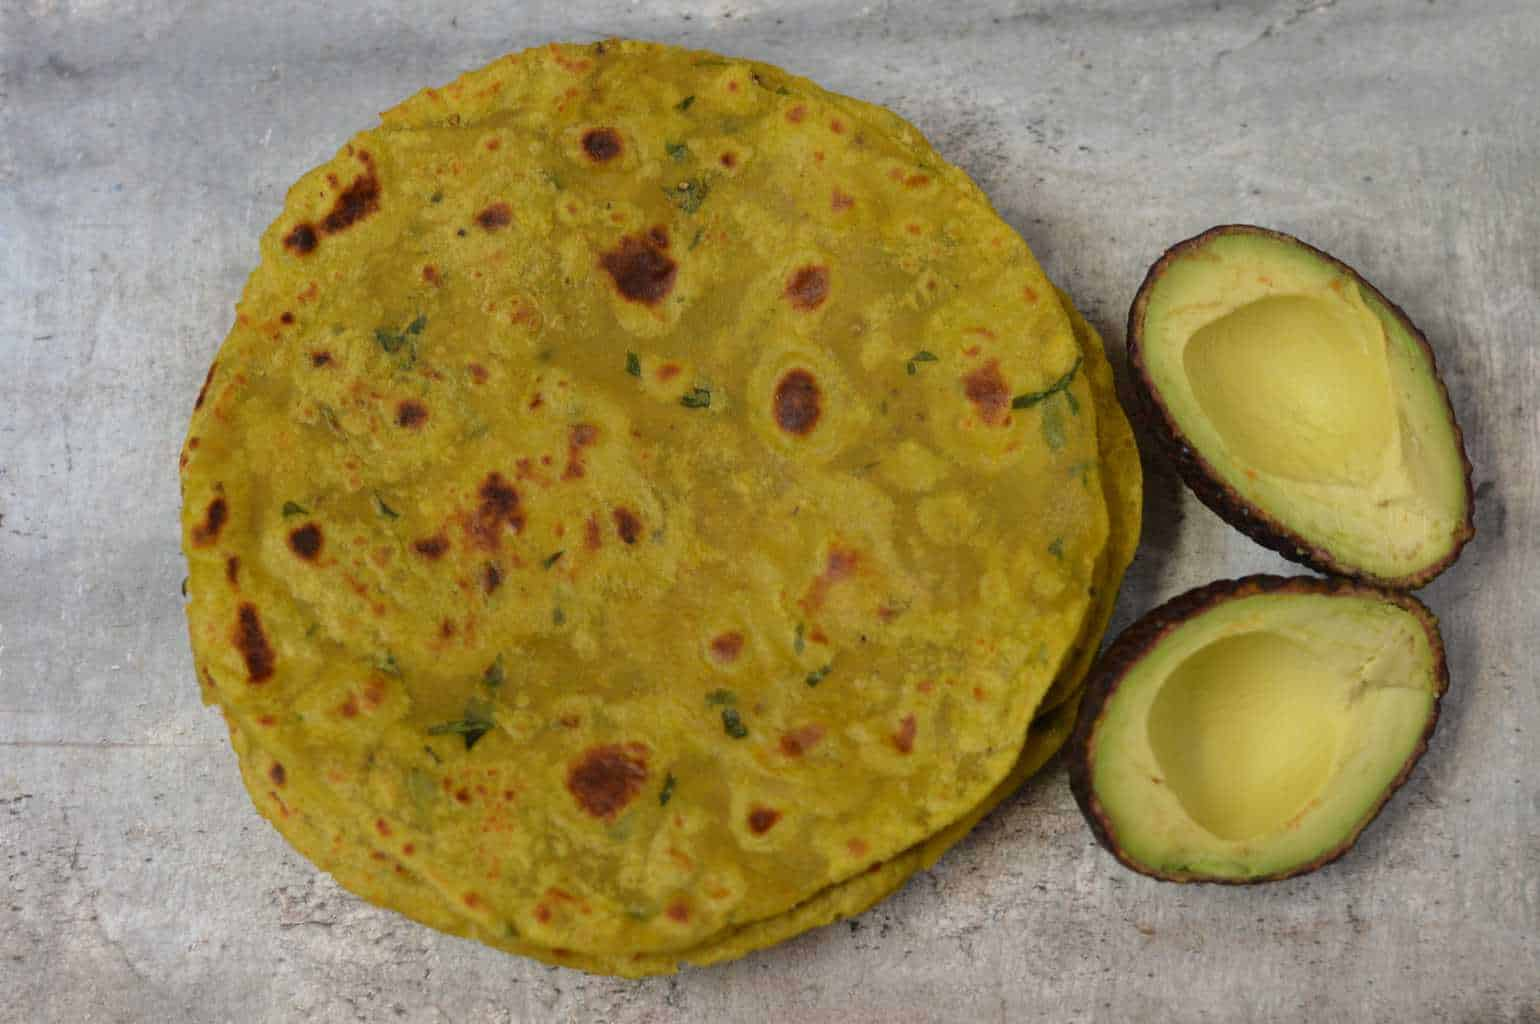 Avocado Parathas|Avocado Paratha is an Indian Whole Wheat Flatbread prepared by kneading whole wheat flour and avocado pulp together with few spices|indianveggiedelight.com